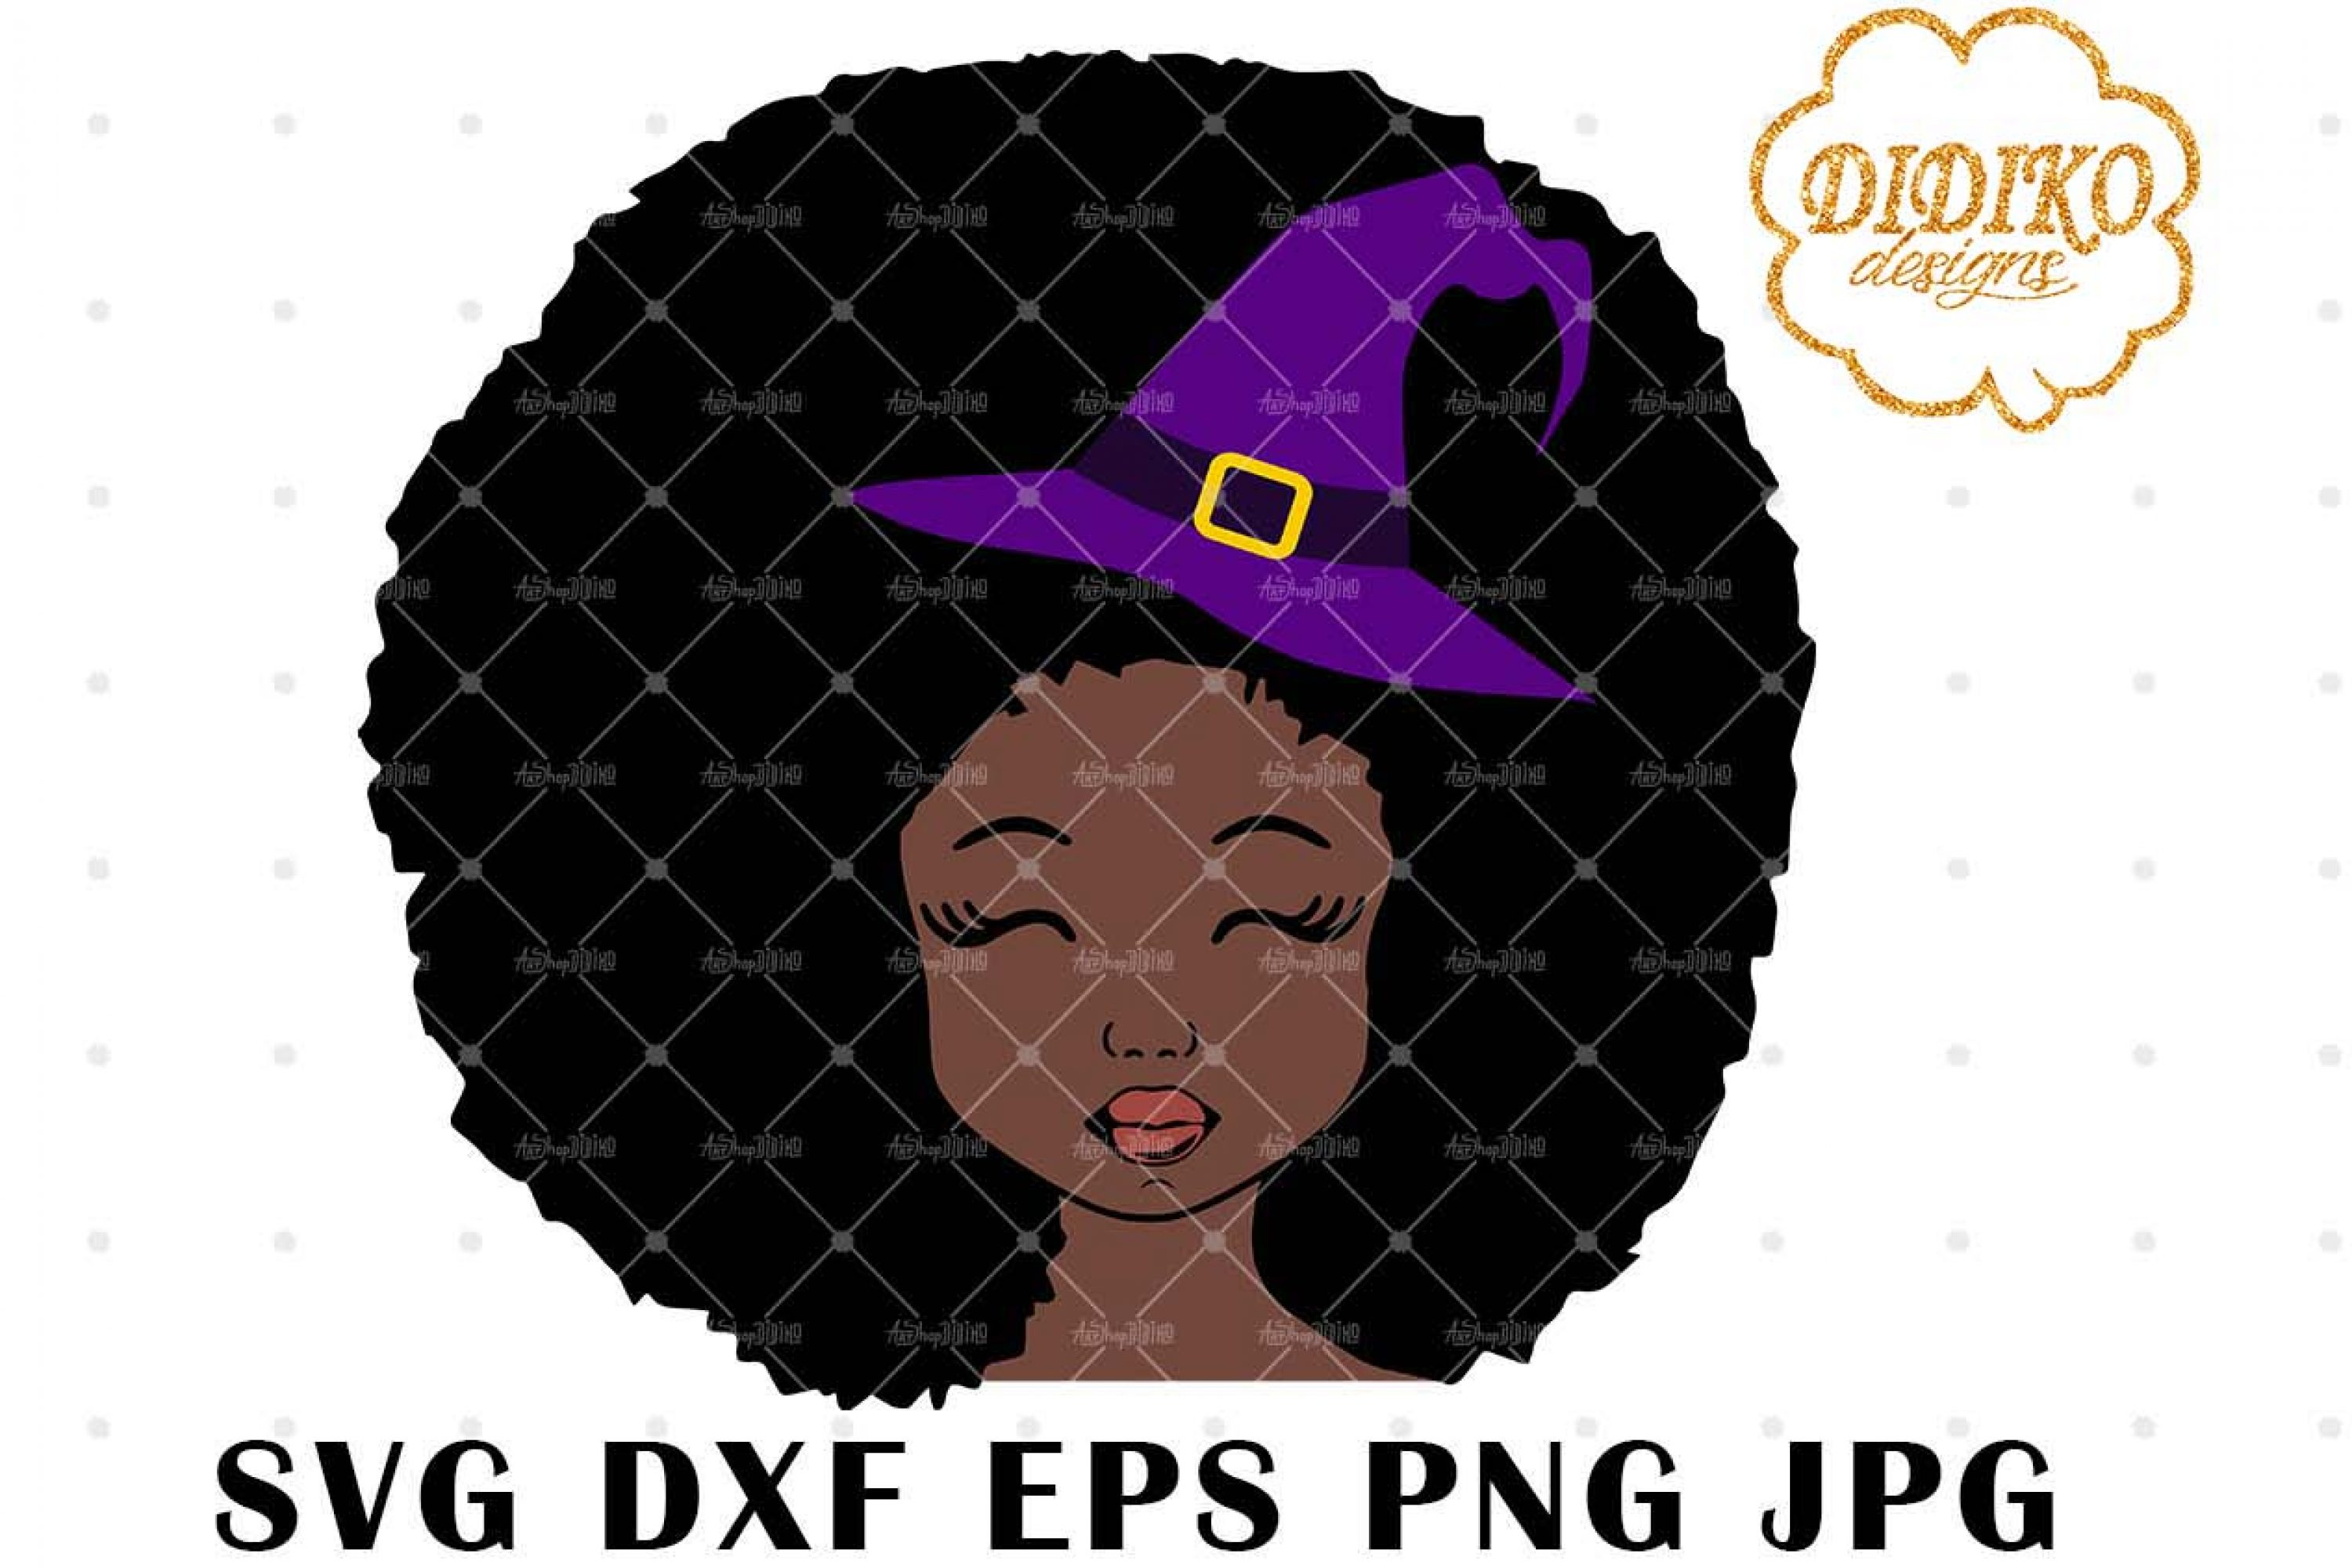 Halloween Afro Girl 1 SVG, Witch Hat SVG, Afro Puff svg